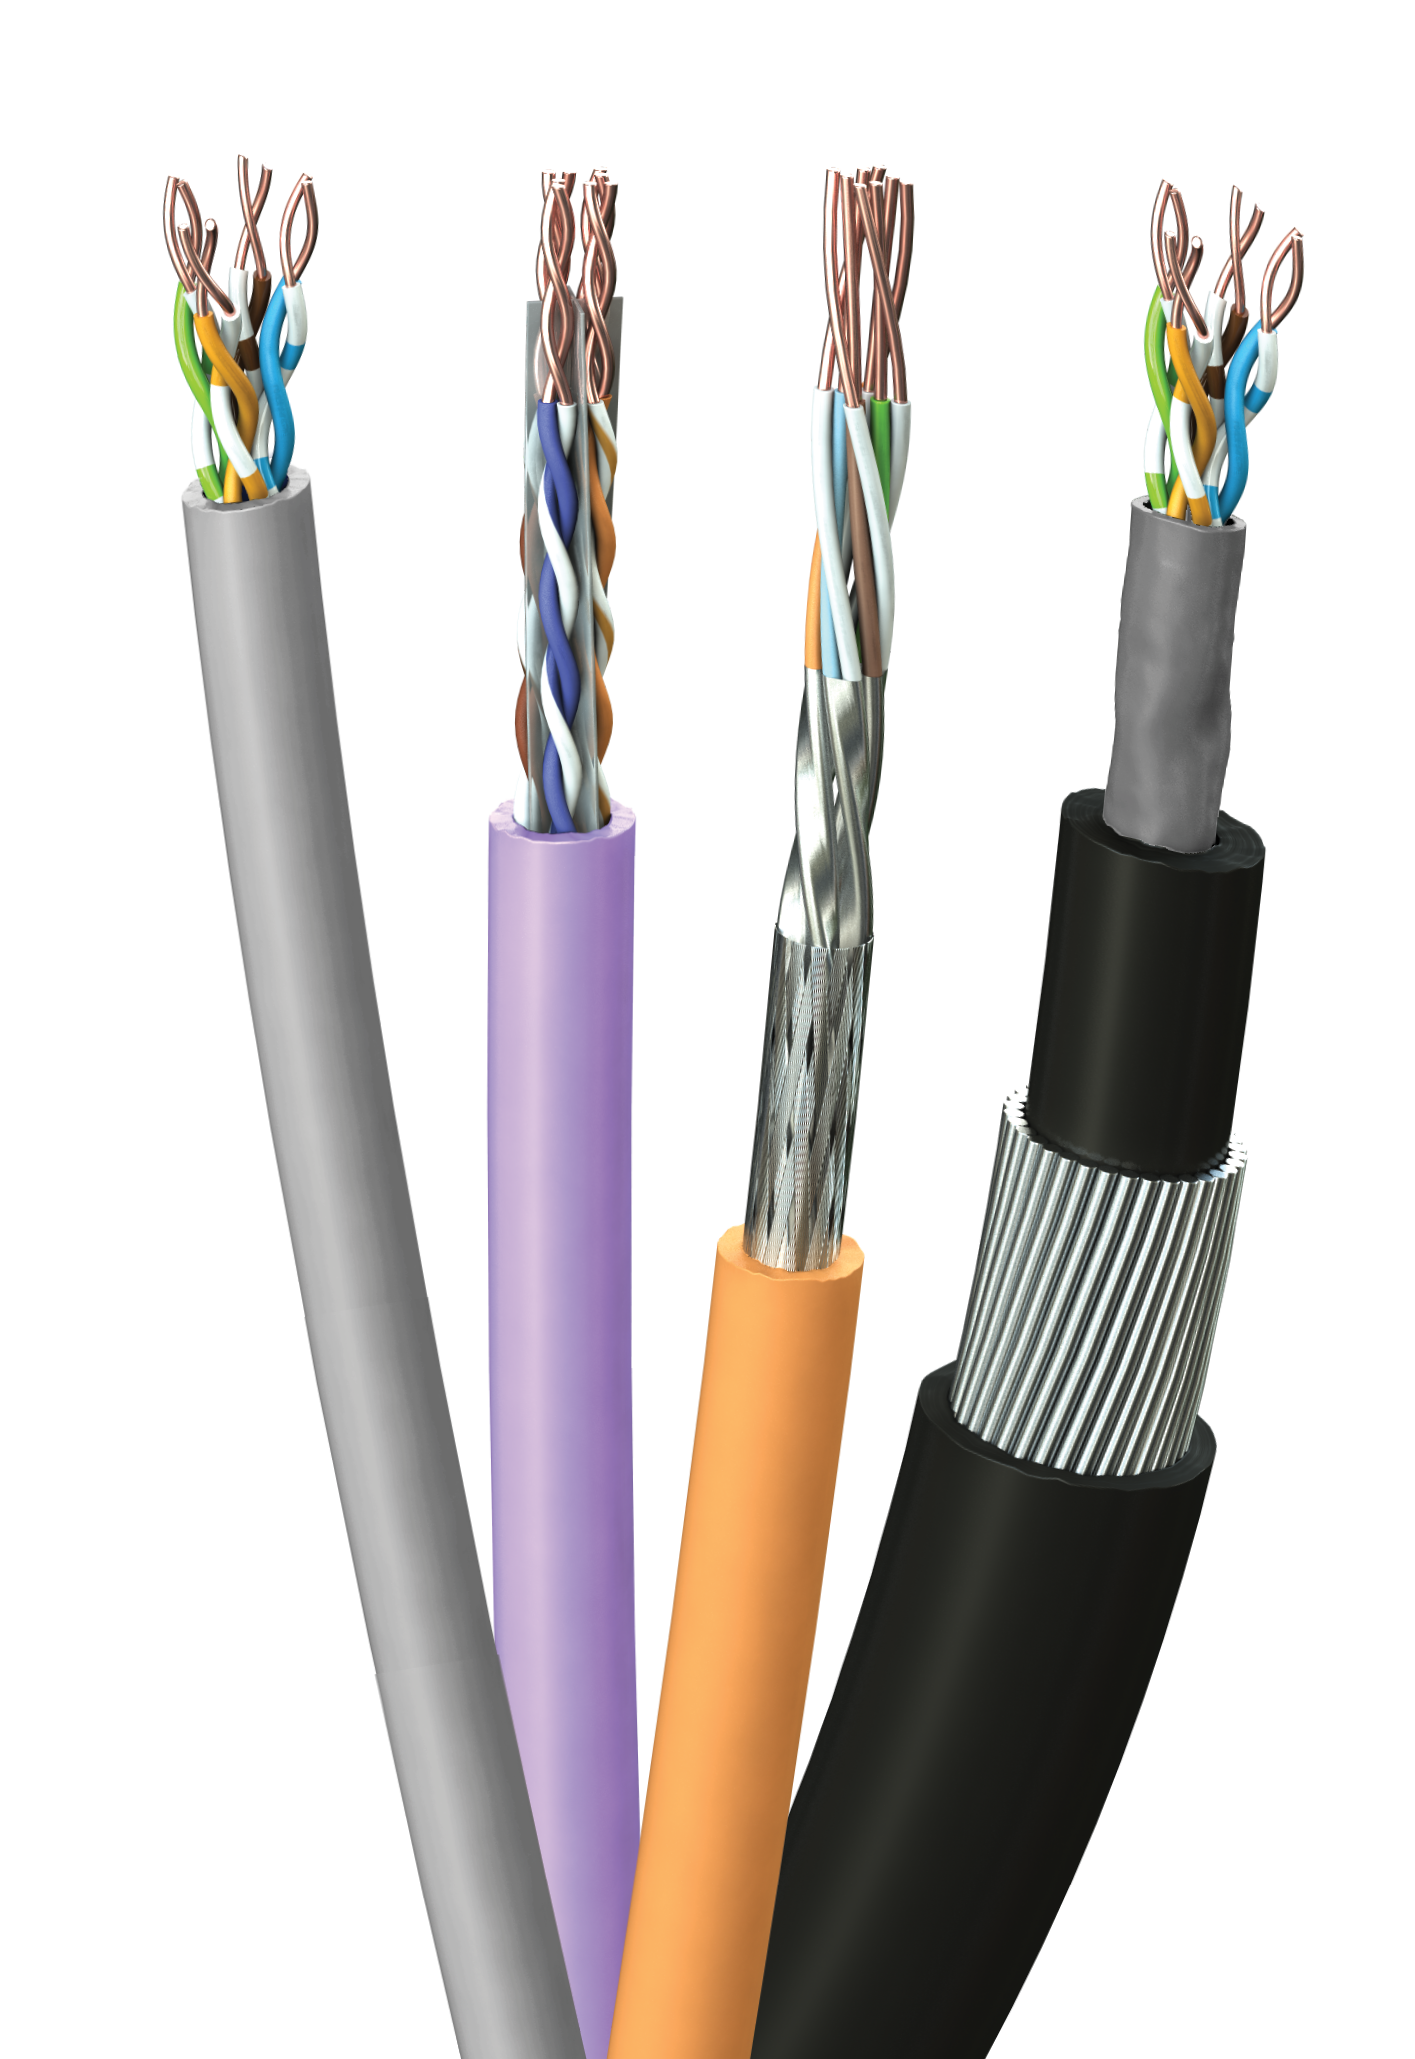 Structured Wiring Data Cables